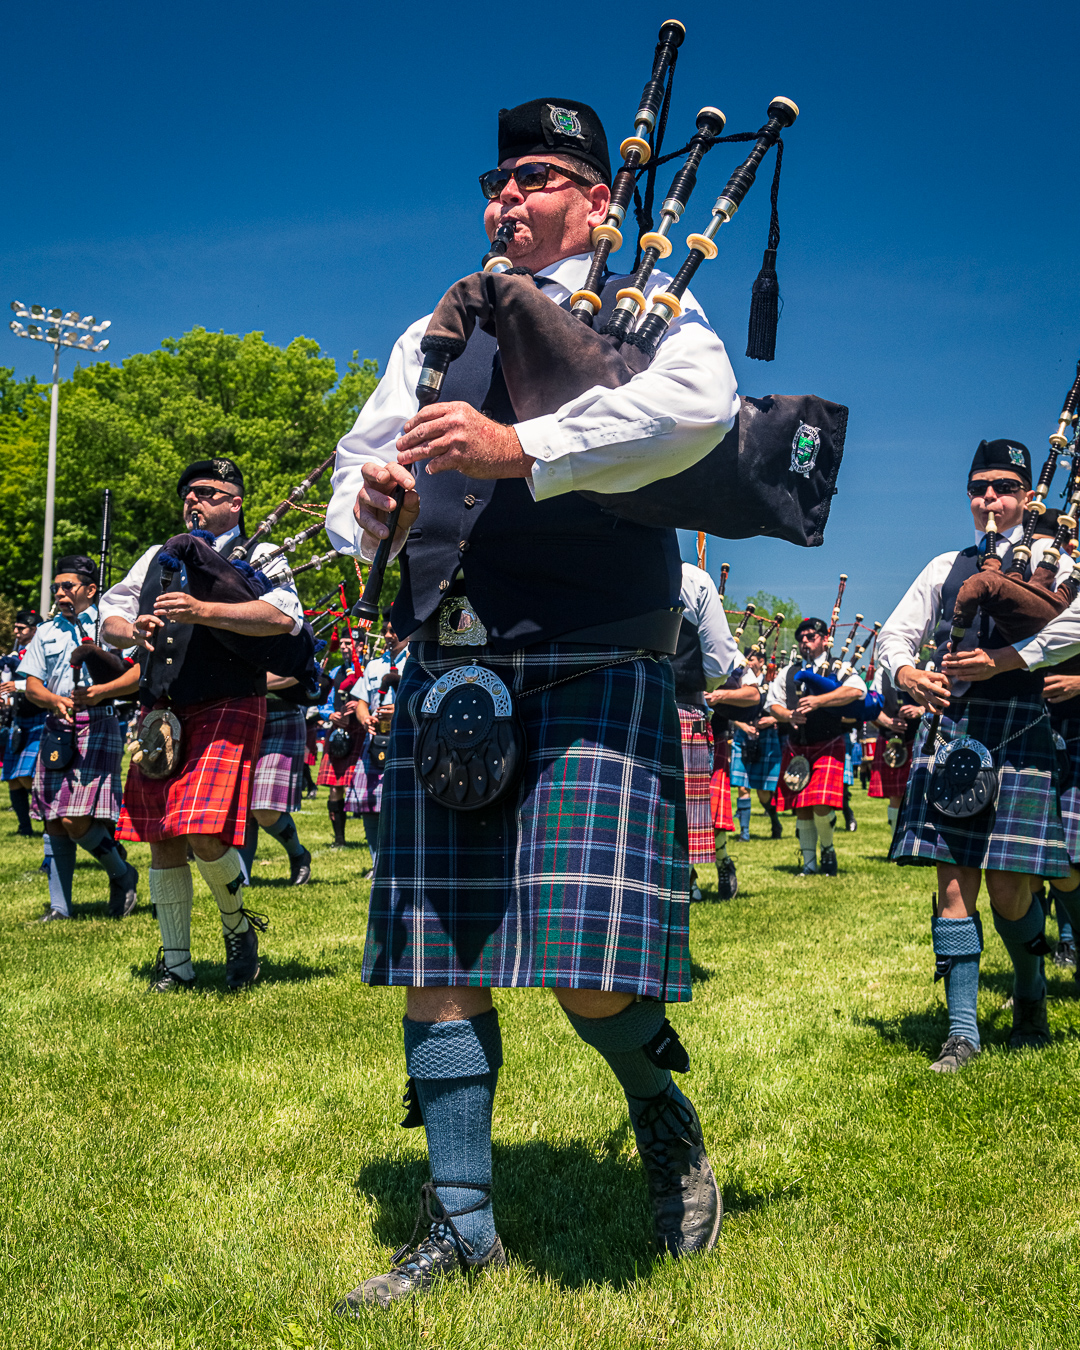 Georgetown Highland Games - Massed Bands